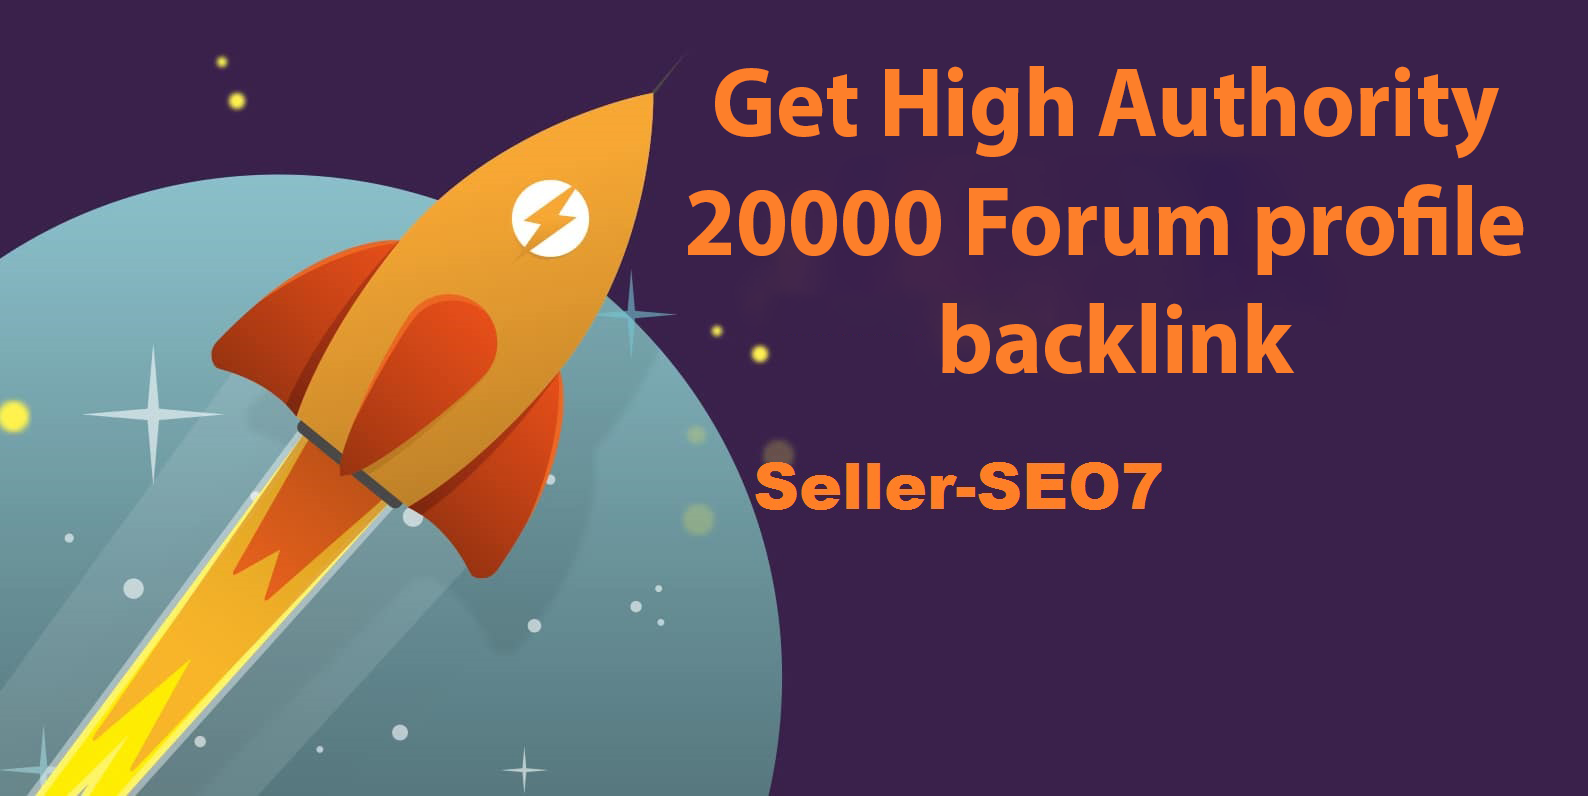 Get High Authority 20000 Forum profile backlink service on google